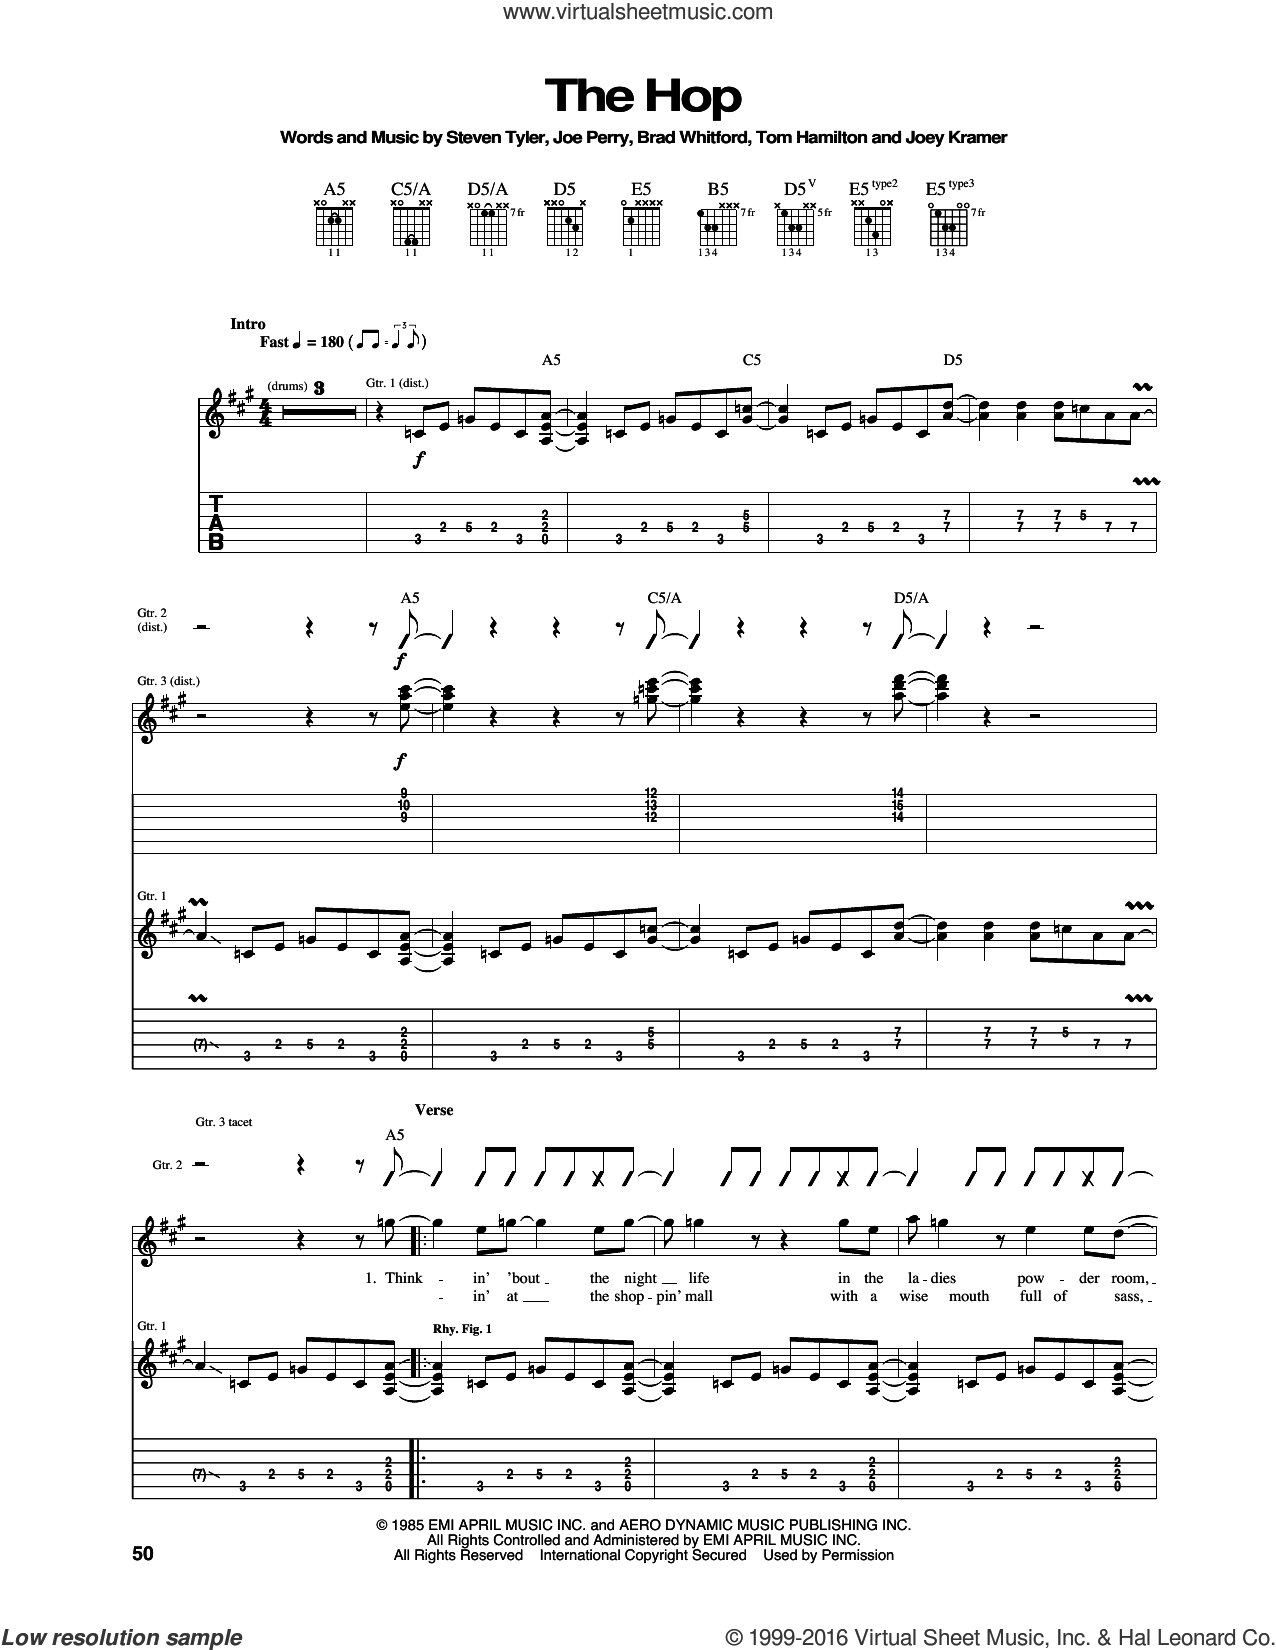 The Hop sheet music for guitar (tablature) by Aerosmith, Brad Whitford, Joe Perry, Joey Kramer, Steven Tyler and Tom Hamilton, intermediate